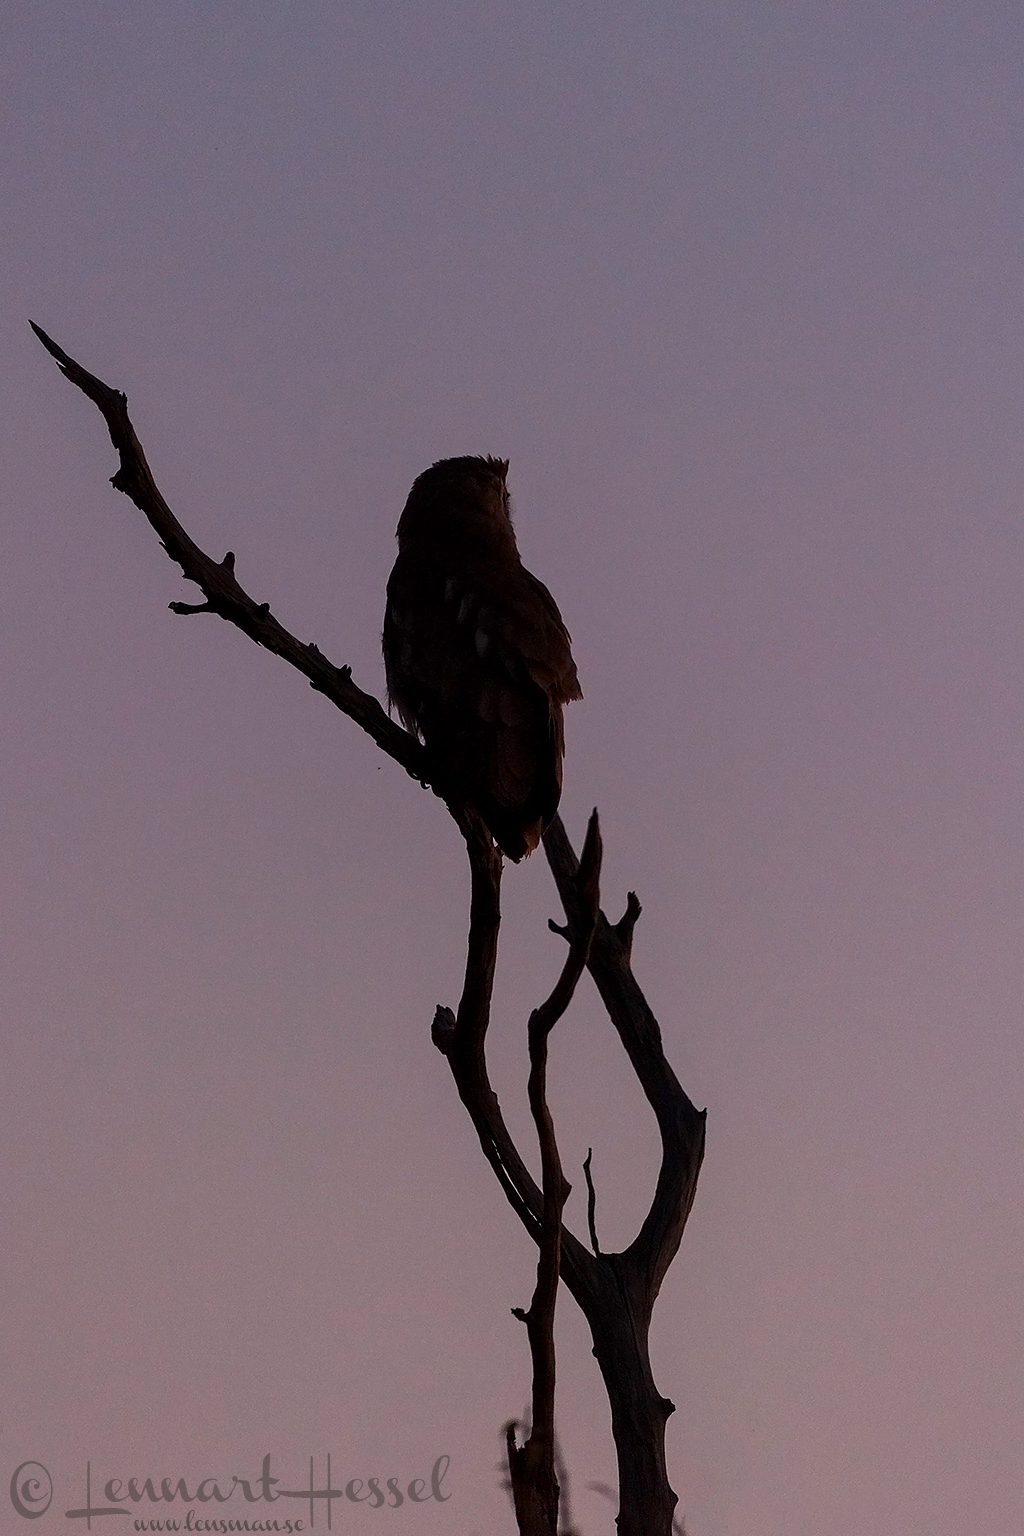 Verreaux's Giant Eagle-Owl seen in Moremi Game Reserve, Botswana lab color